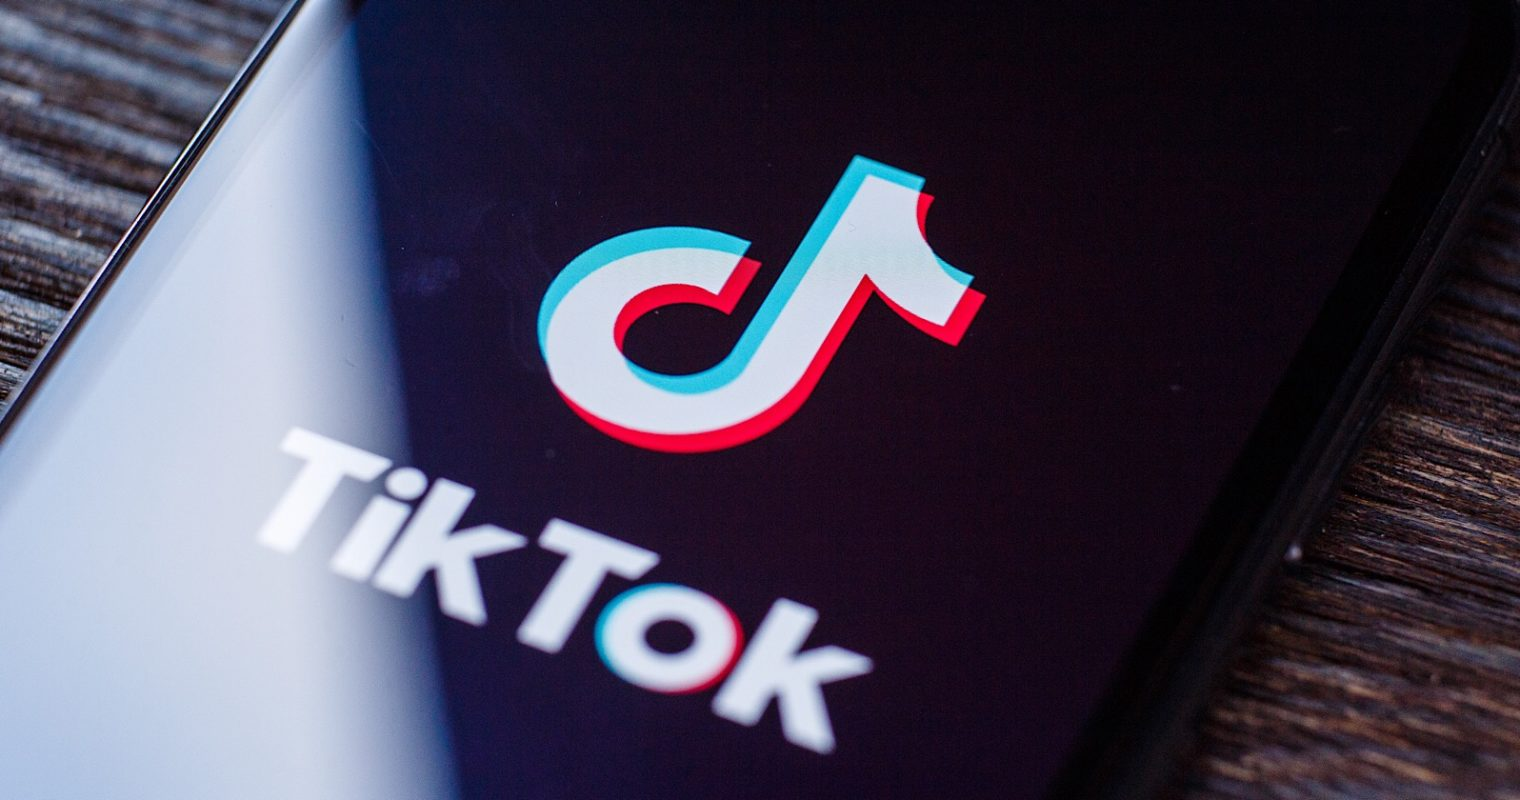 TikTok is Working on a Way for Advertisers to Target Users in Other Apps